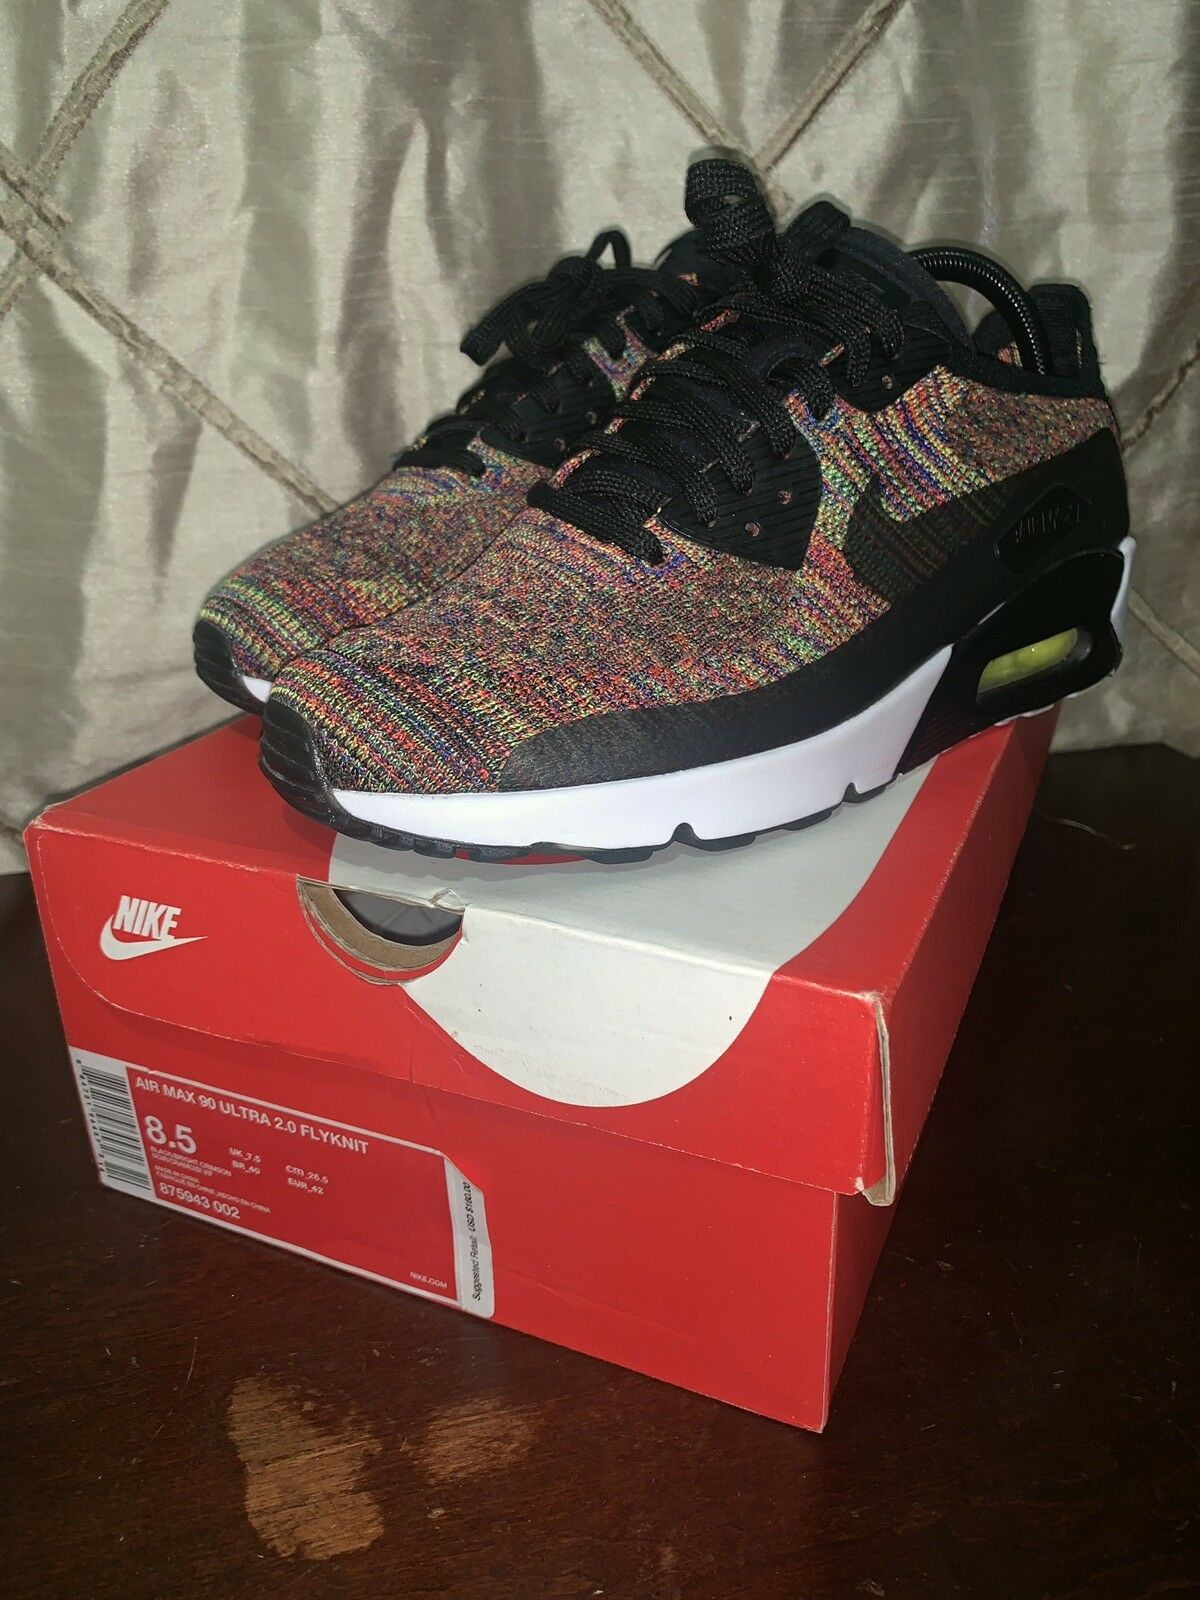 Air Max 90 Flyknit Multi color Size 8.5